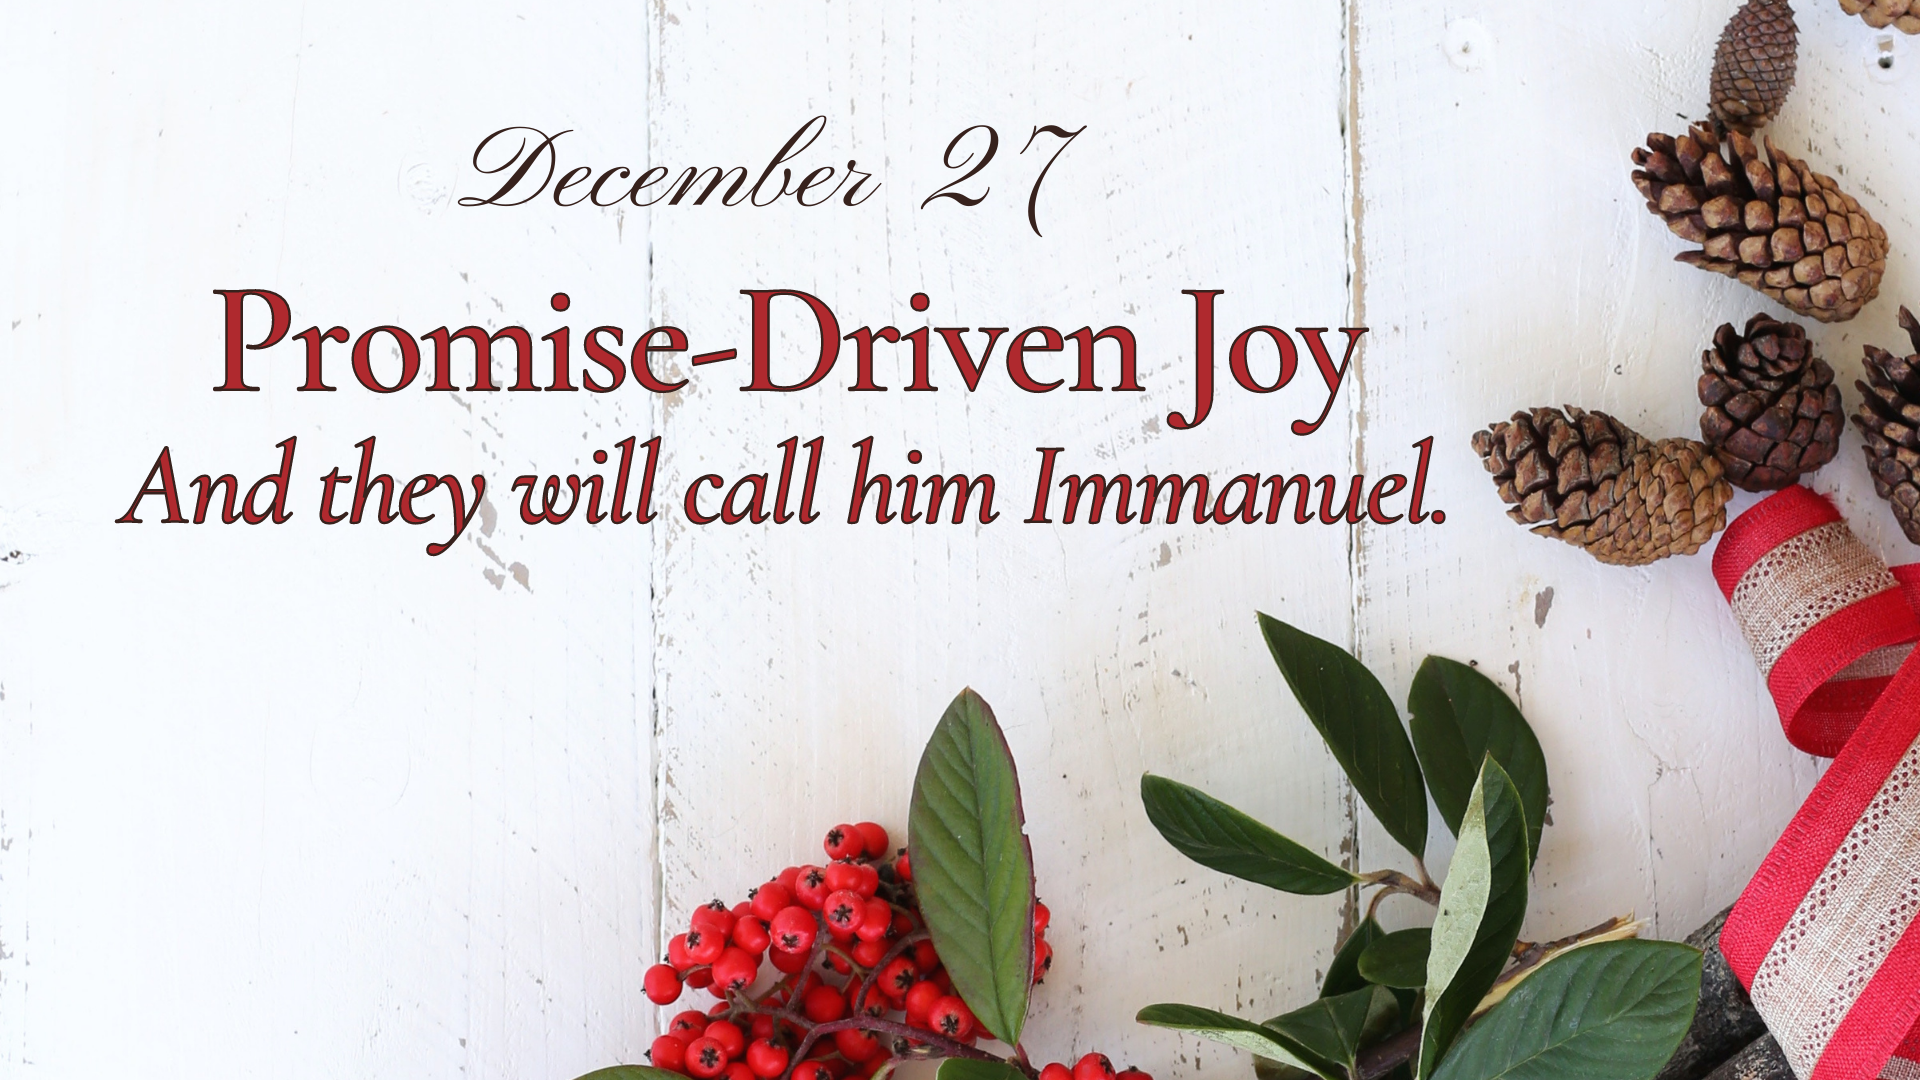 Promise-Driven Joy: And they will call him Immanuel.